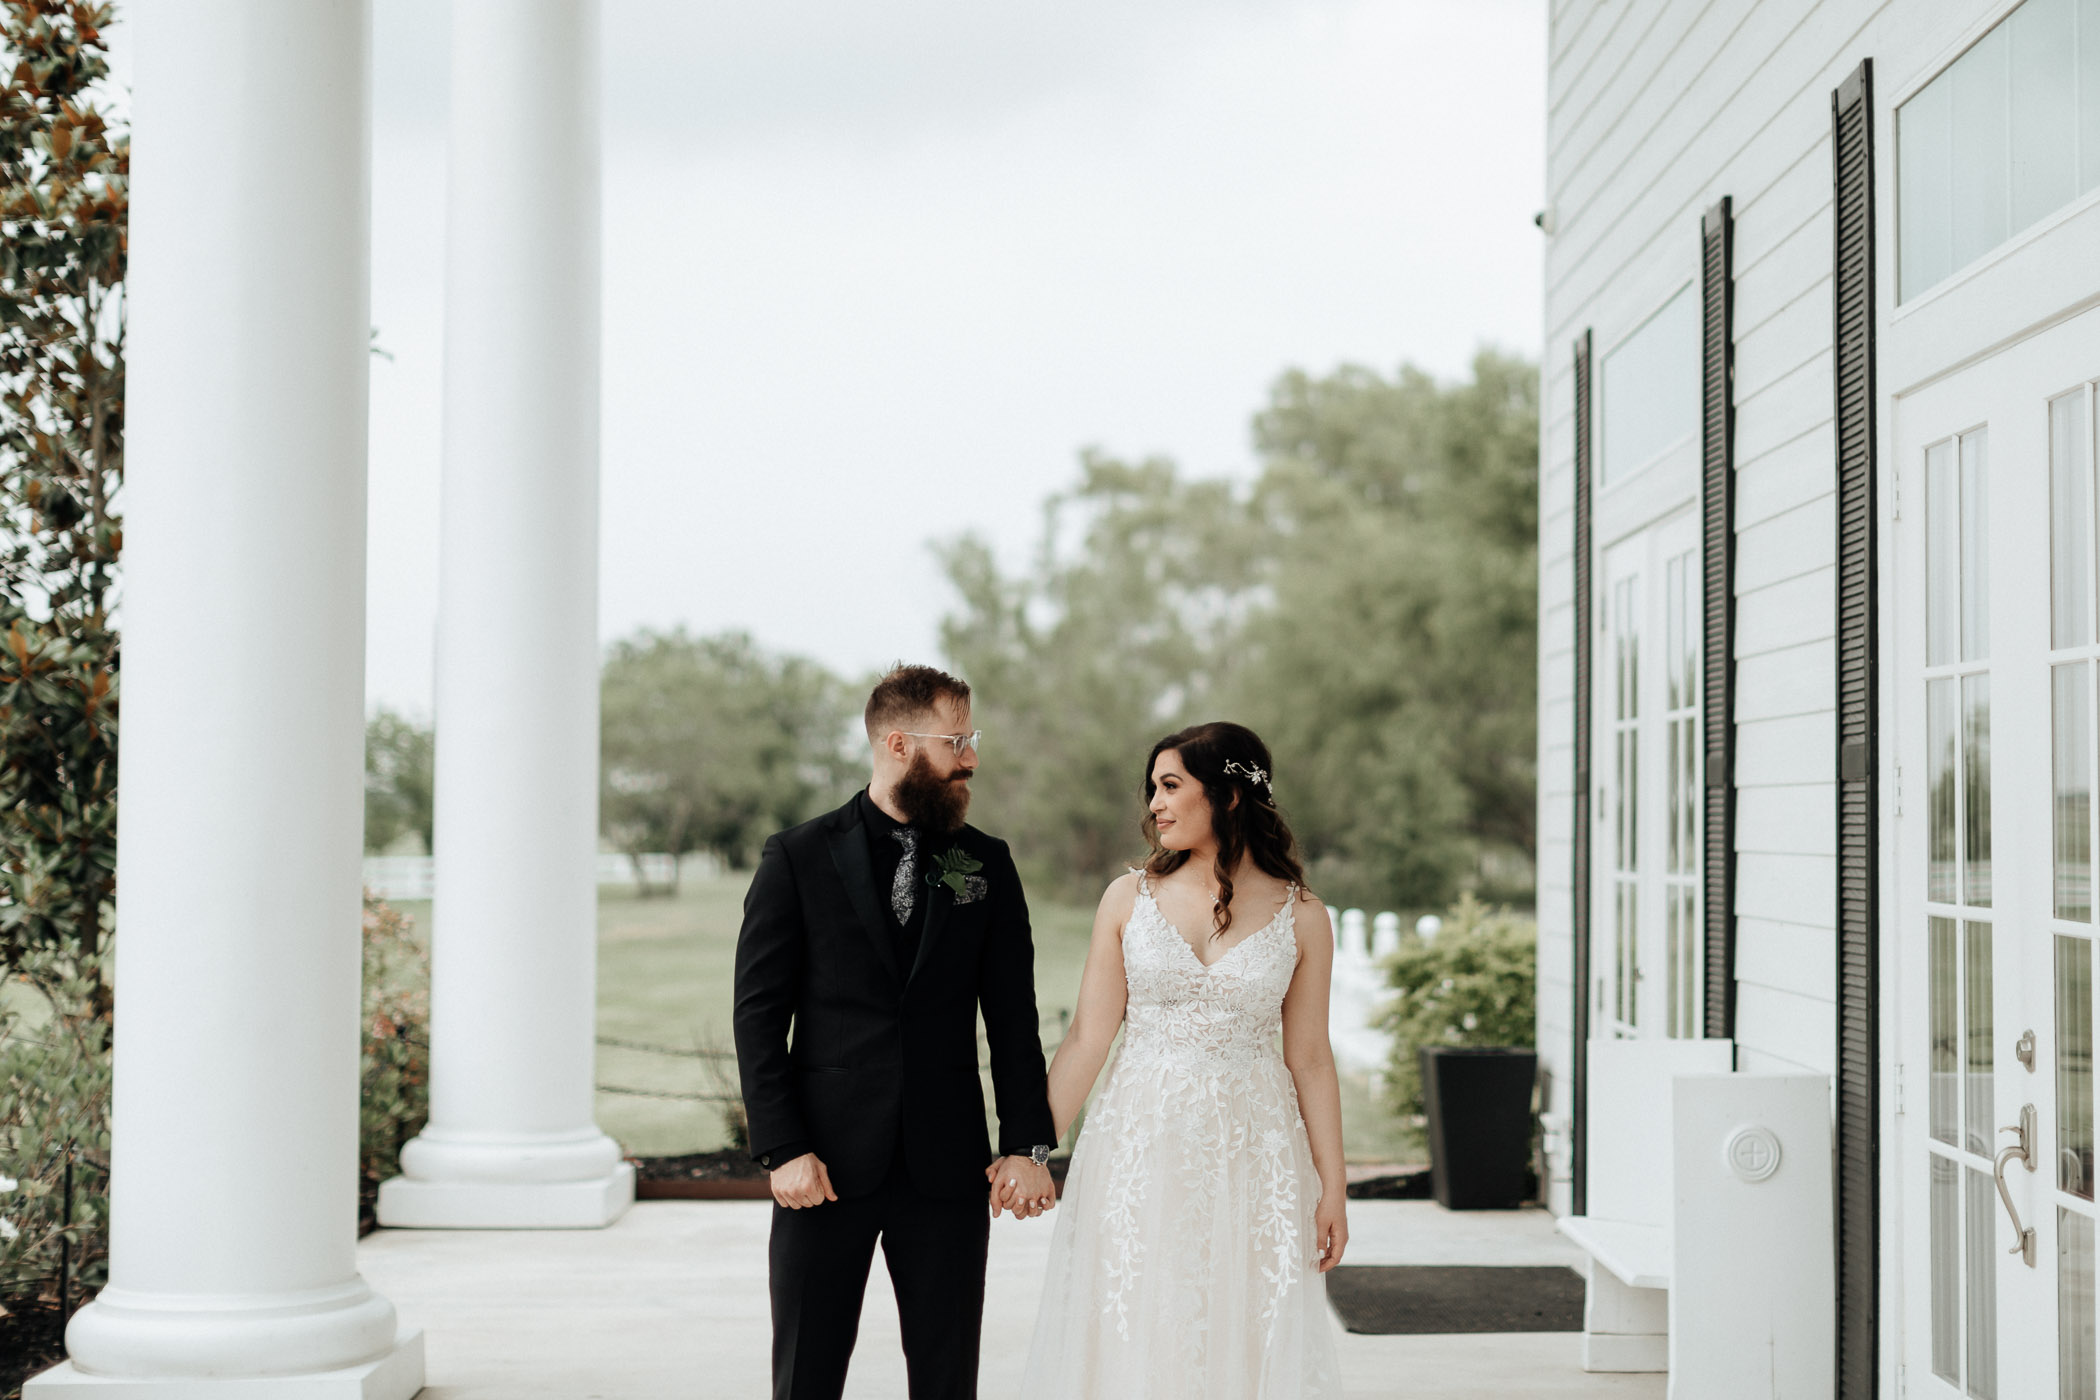 Moody outdoor wedding photo in DFW